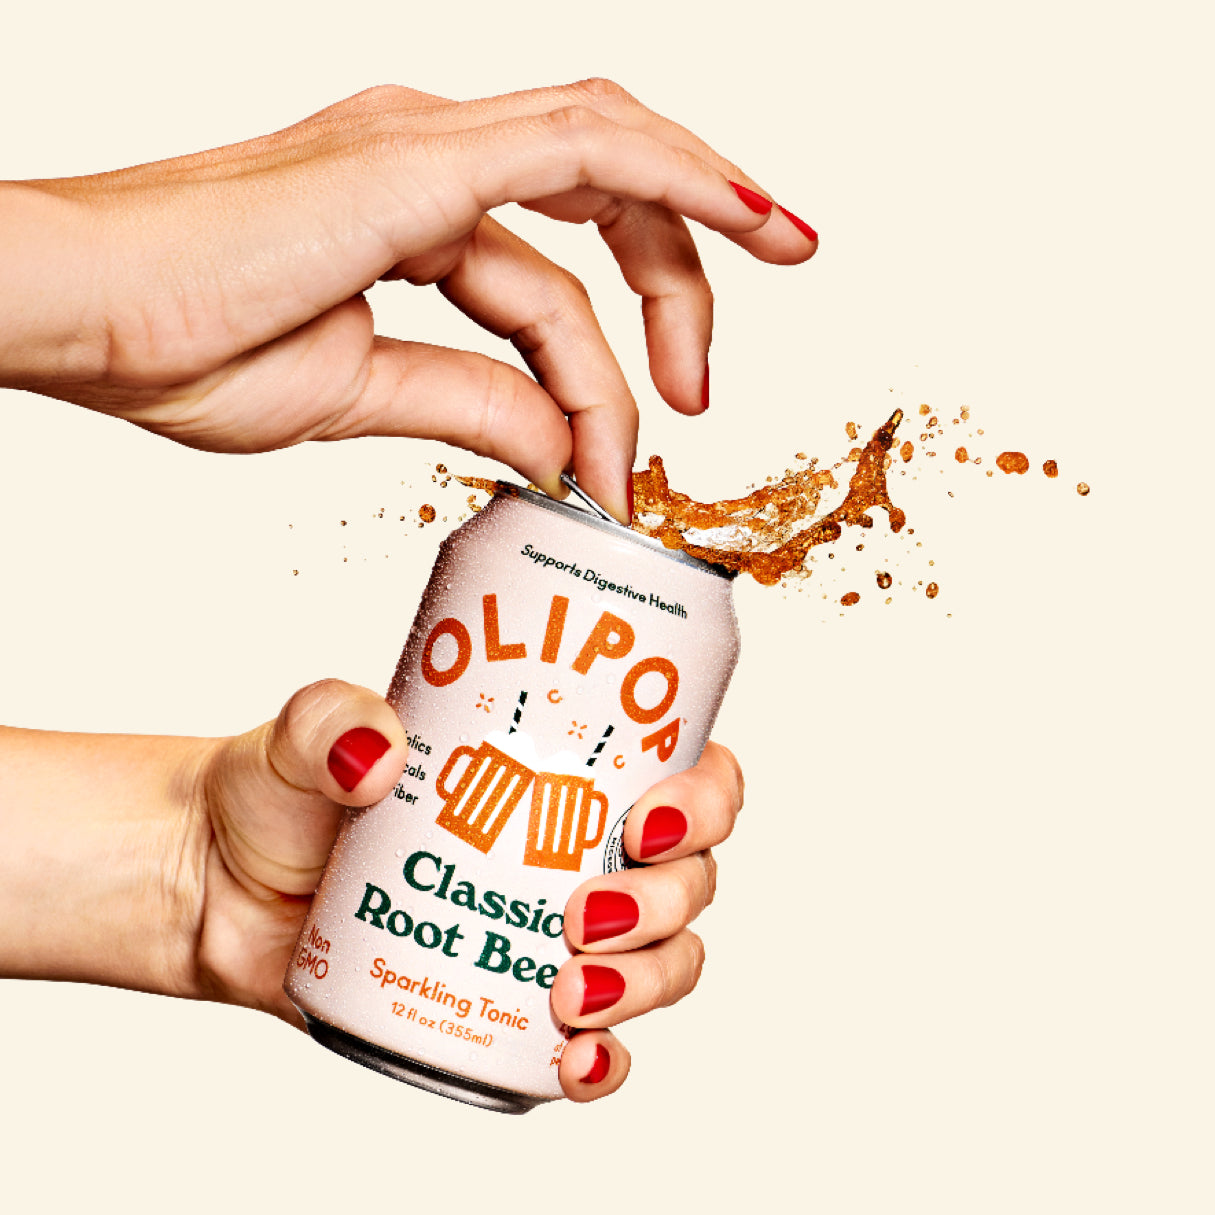 Olipop Root Beer being uncorked by female hands